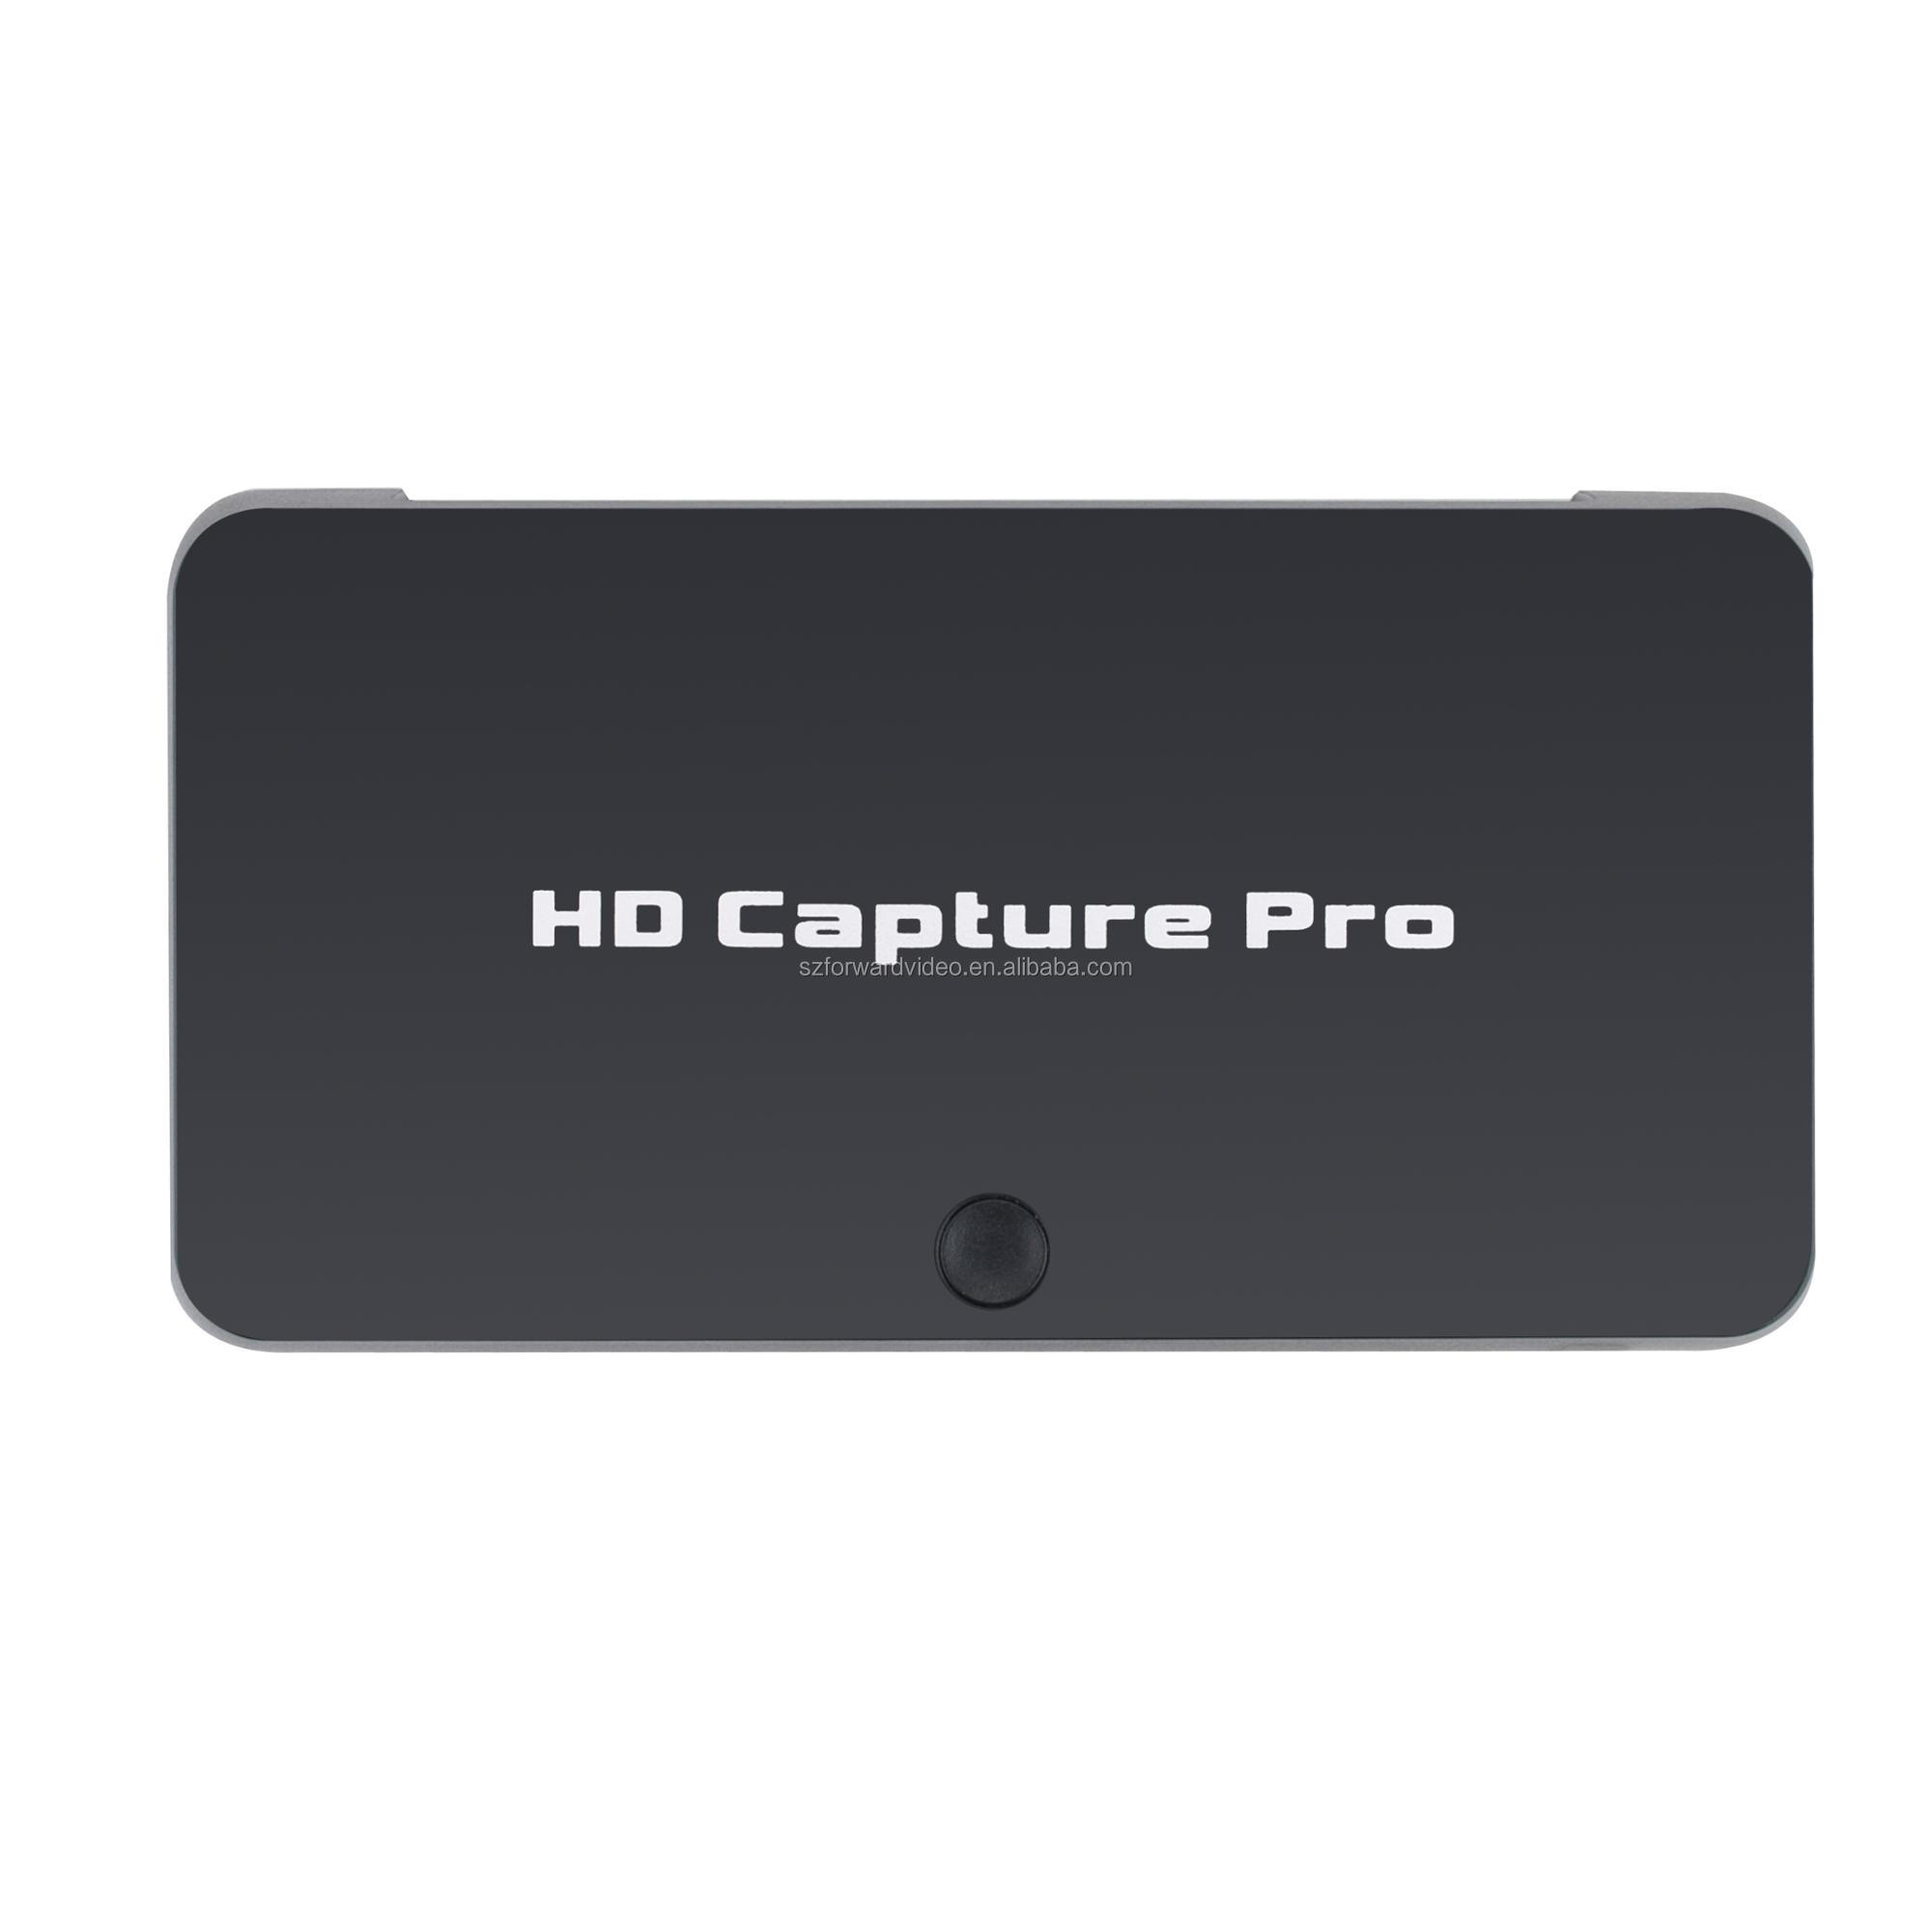 Stand alone HDMI video capture Pro game TV capture with playback Schedule recording function support 4K ezcap295